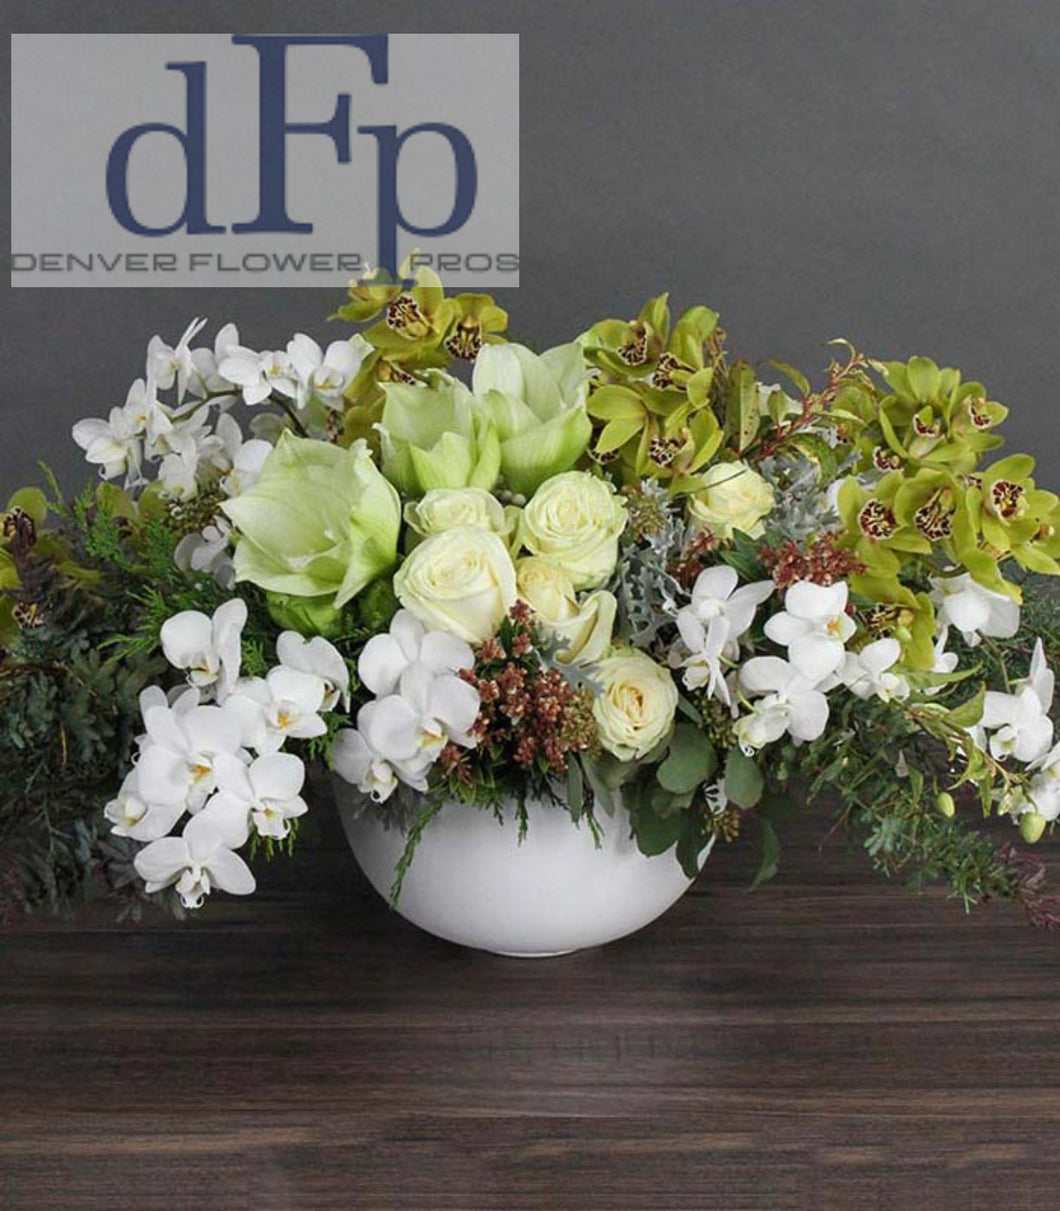 Exquisite Green And White Flower Arrangement Denver Flower Pros Llc